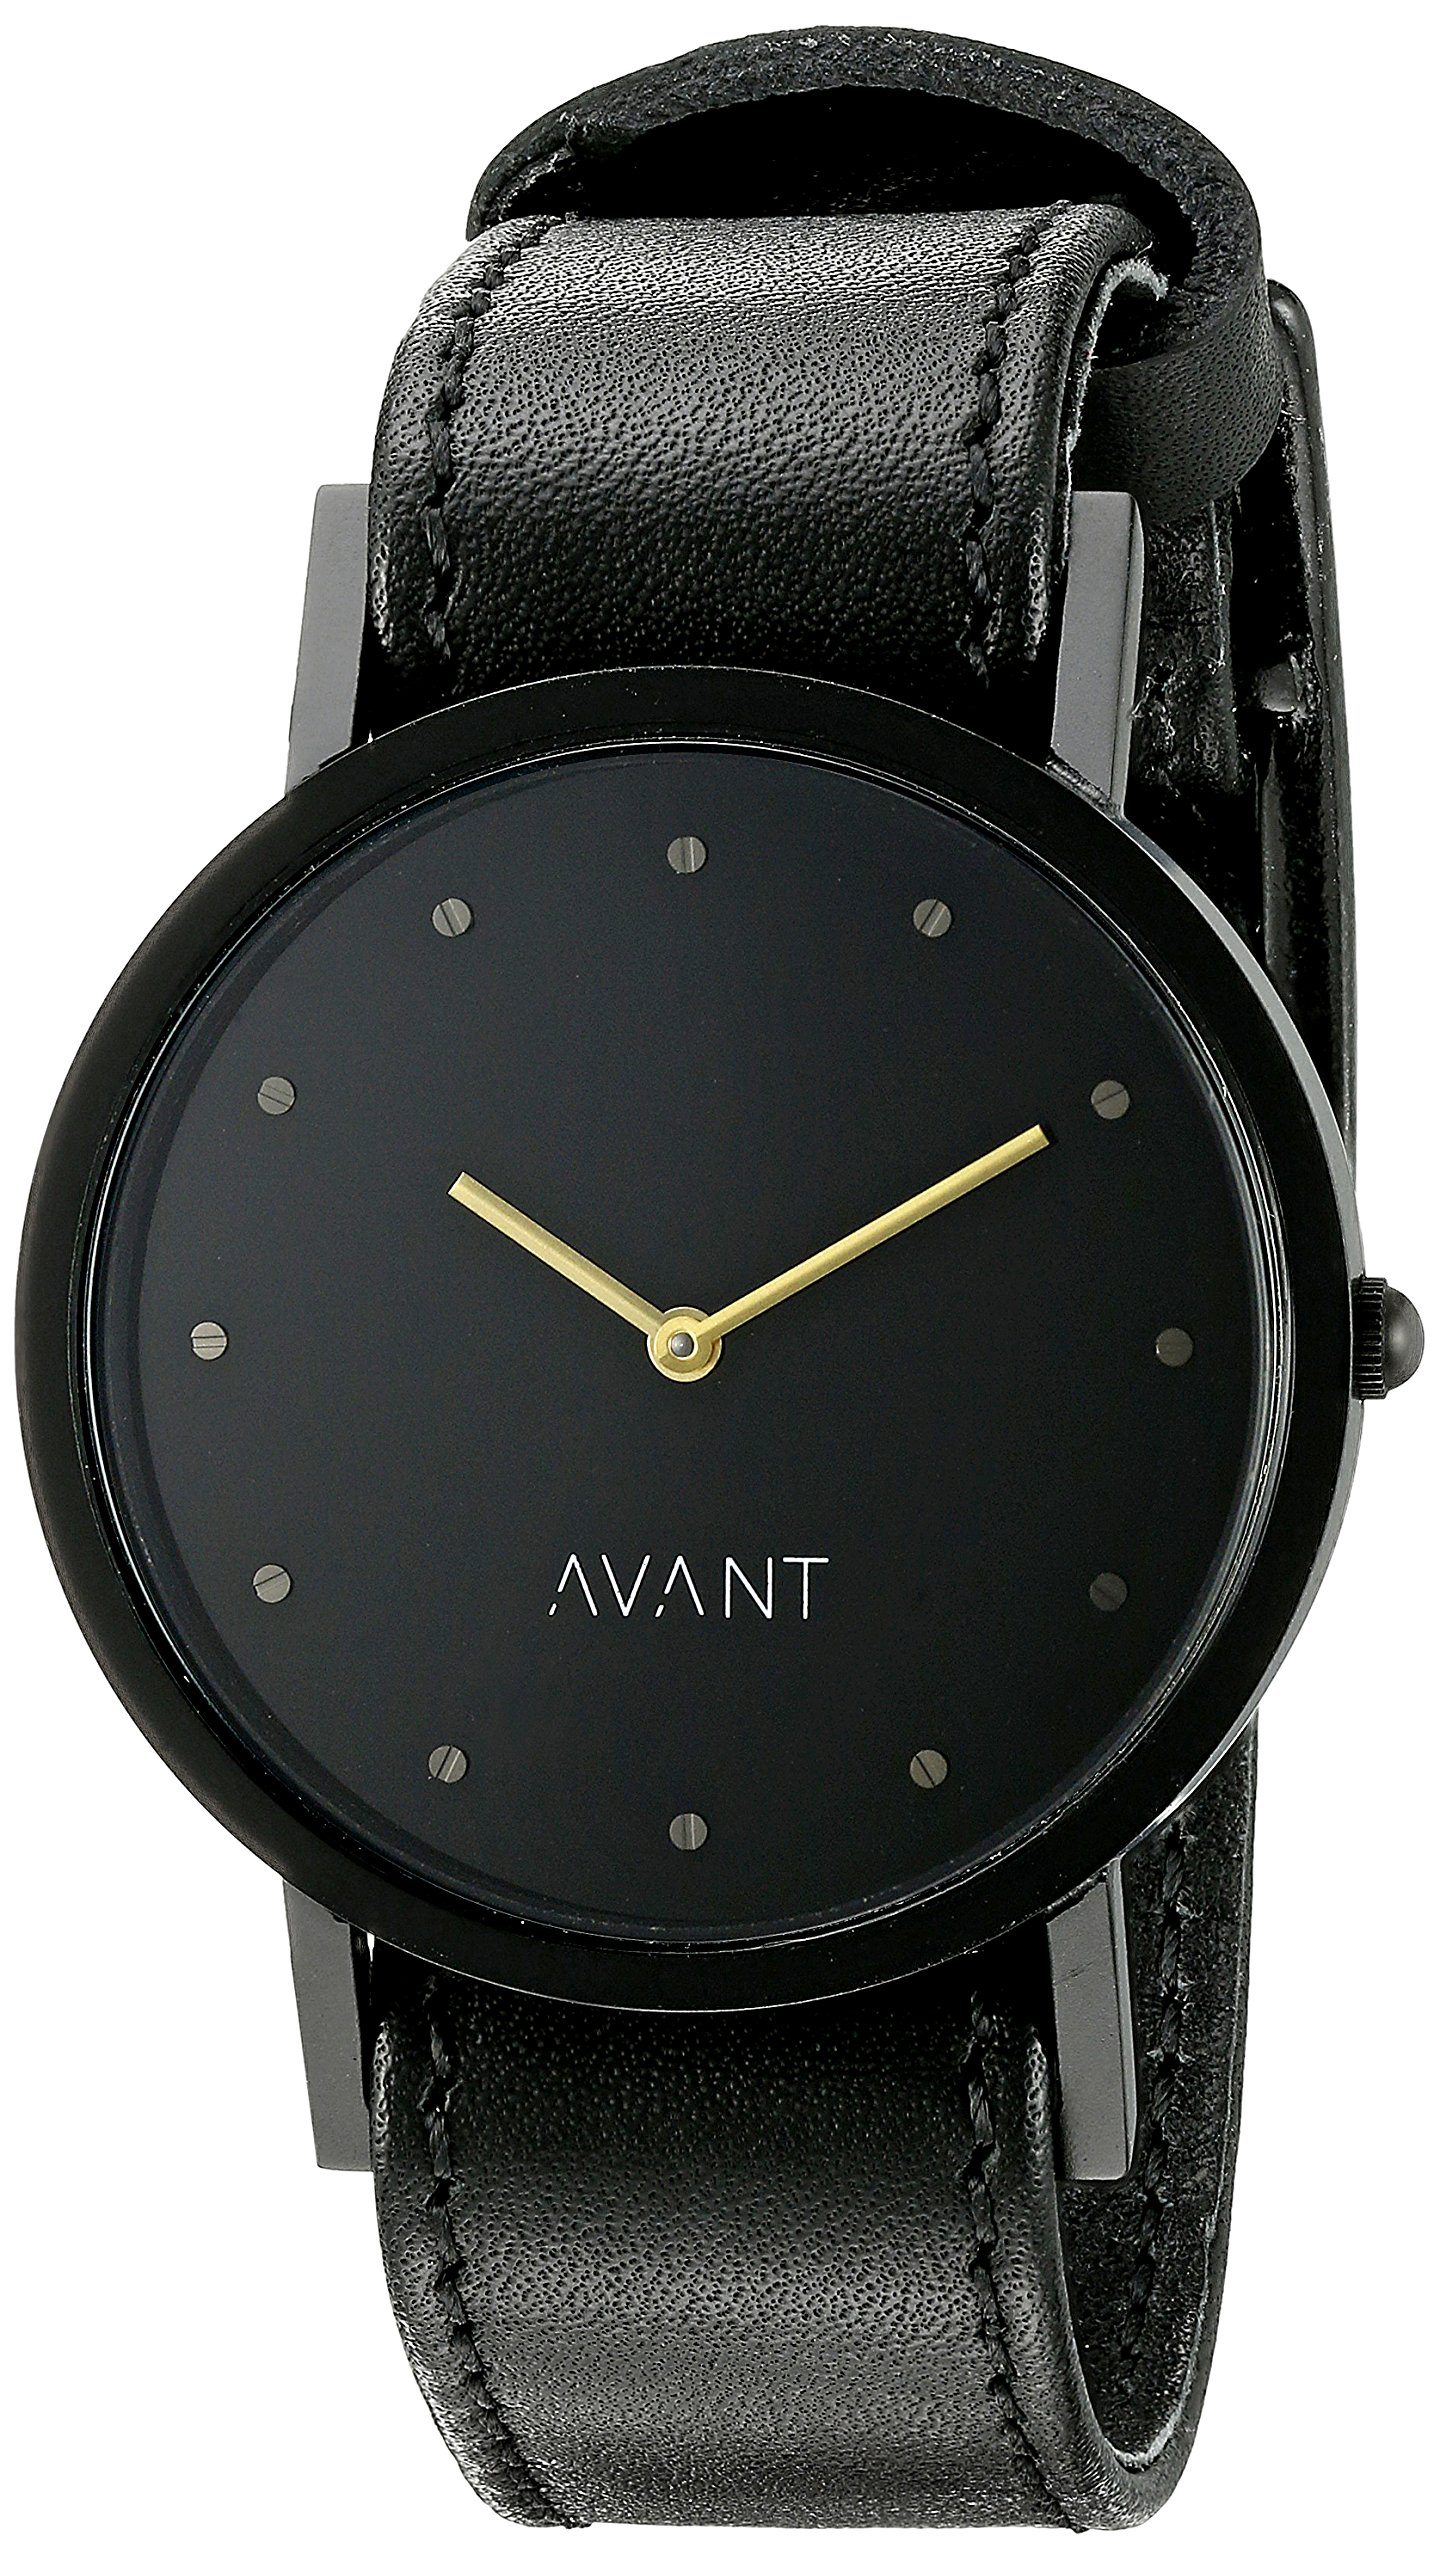 South Lane Unisex 8301 Swiss Analog Display Swiss Quartz Black Watch